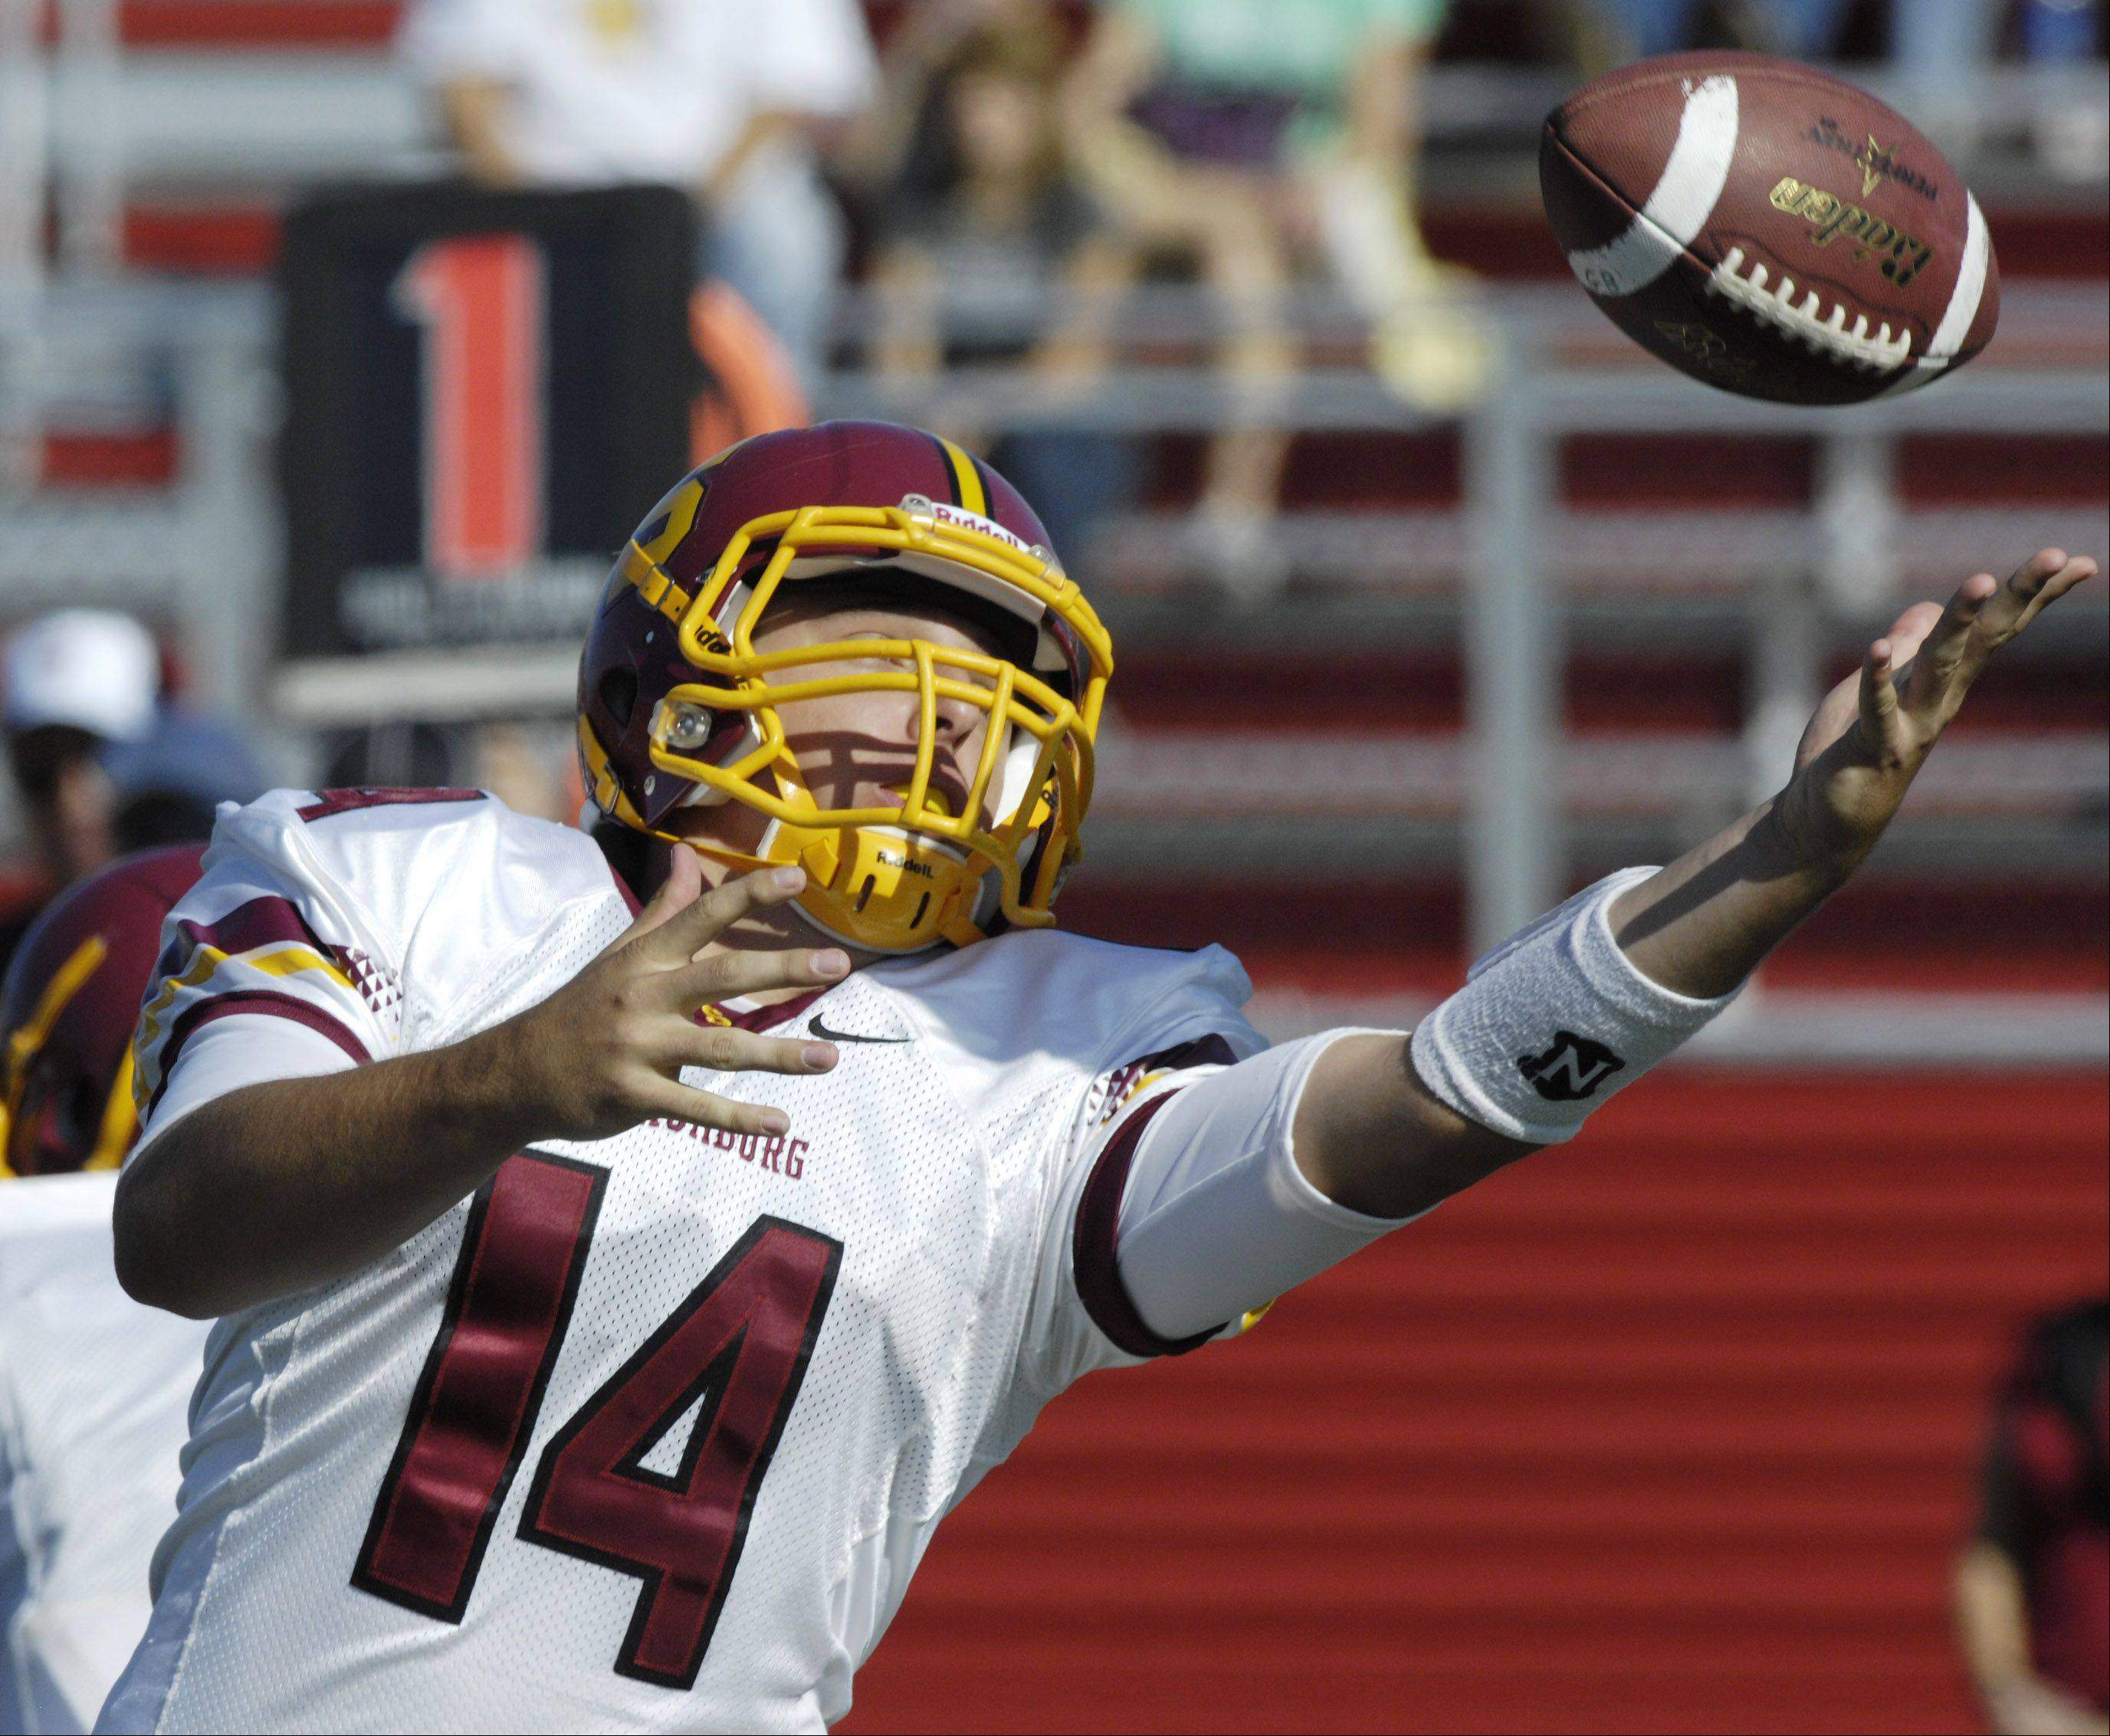 Schaumburg quarterback Nick Anzelmo catches a high snap during Saturday's game against Barrington.